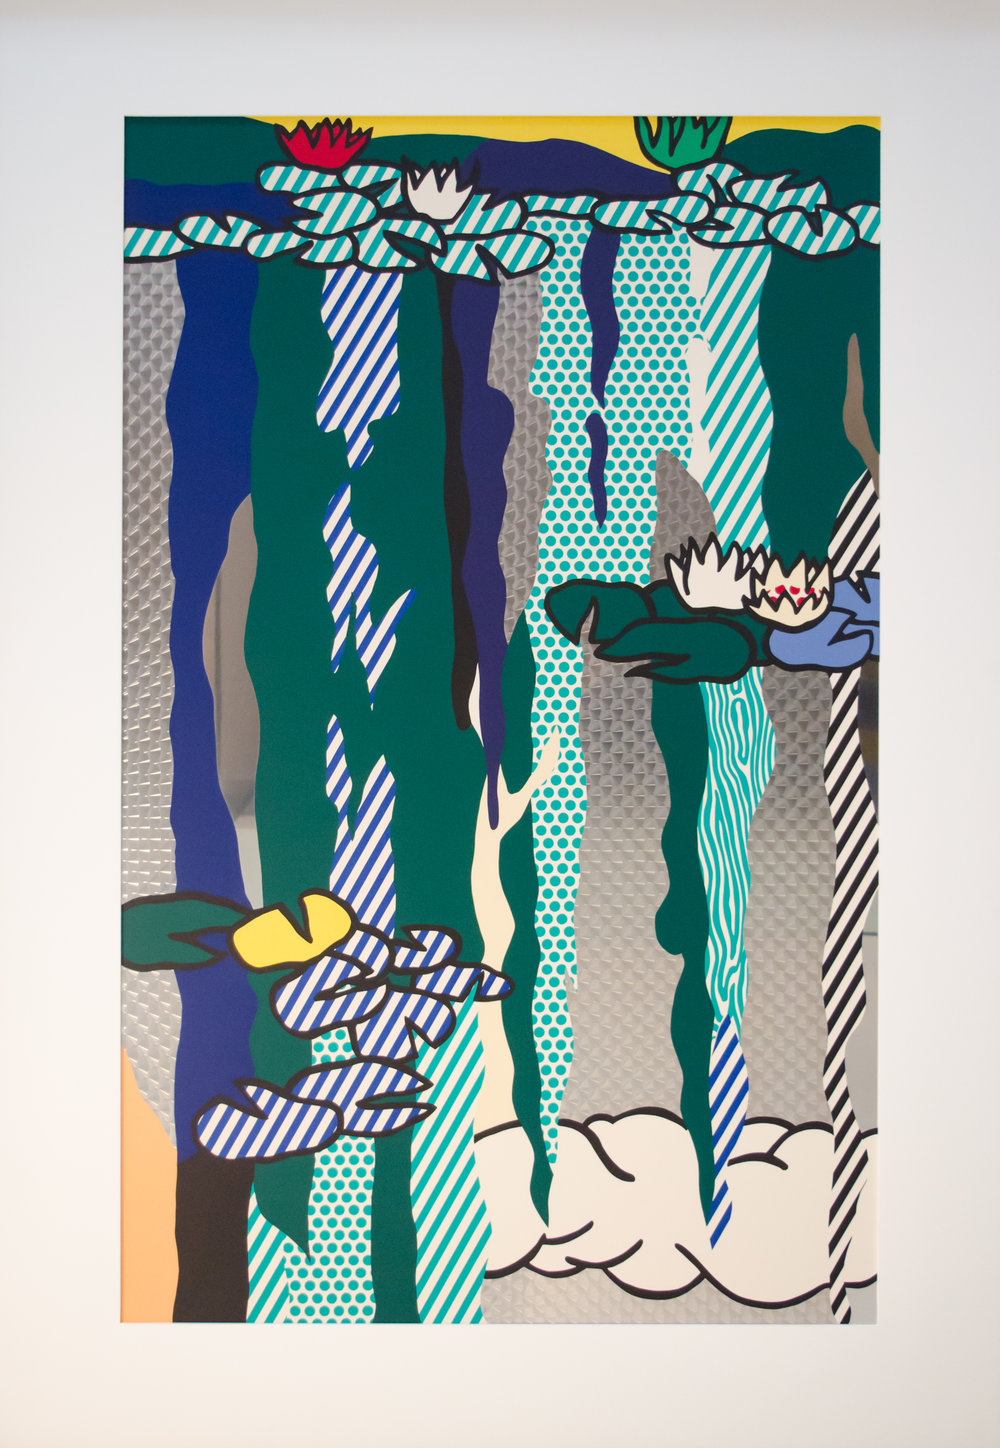 Roy LICHTENSTEIN,  Water Lilies with Cloud  (C. 263), 1992, Screenprint enamel on processed and swirled stainless steel, 65.5 x 44.75 in